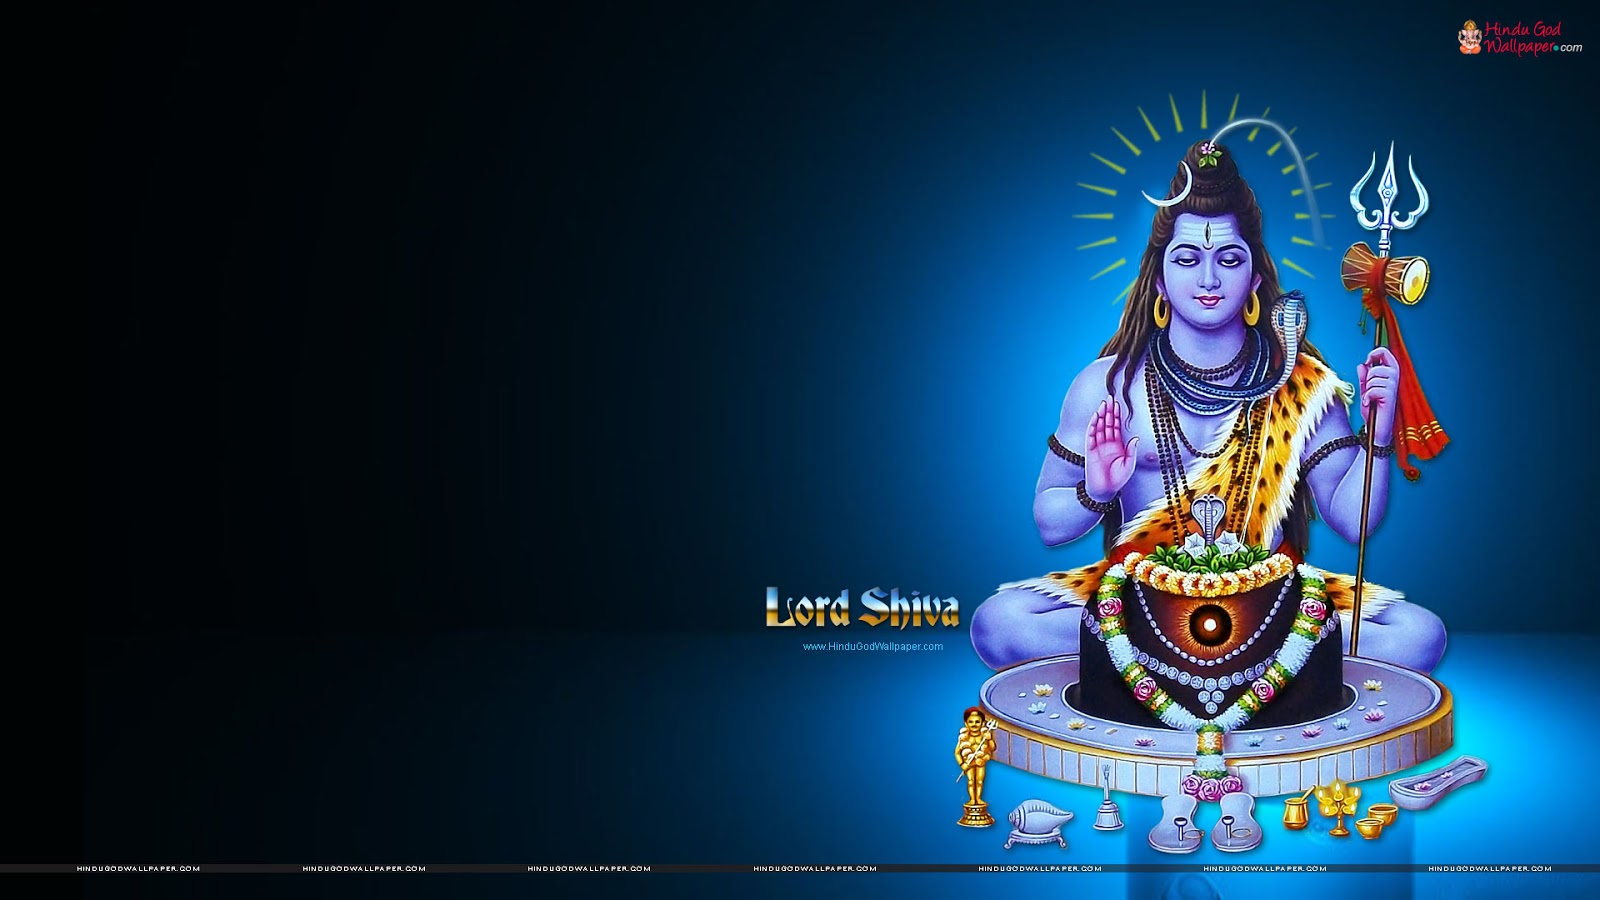 Lord Shiva Hd Wallpapers: Letest Lord Shiva Pictures Full HD Wallpapers Can Make